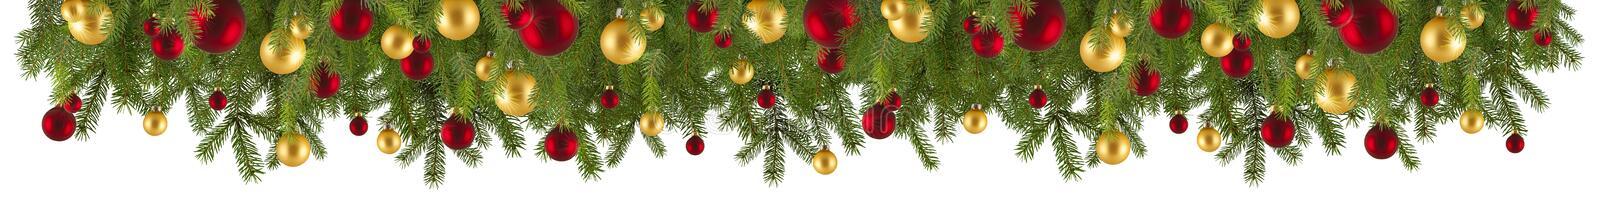 Christmas garland with ornaments and fir branches royalty free stock photography